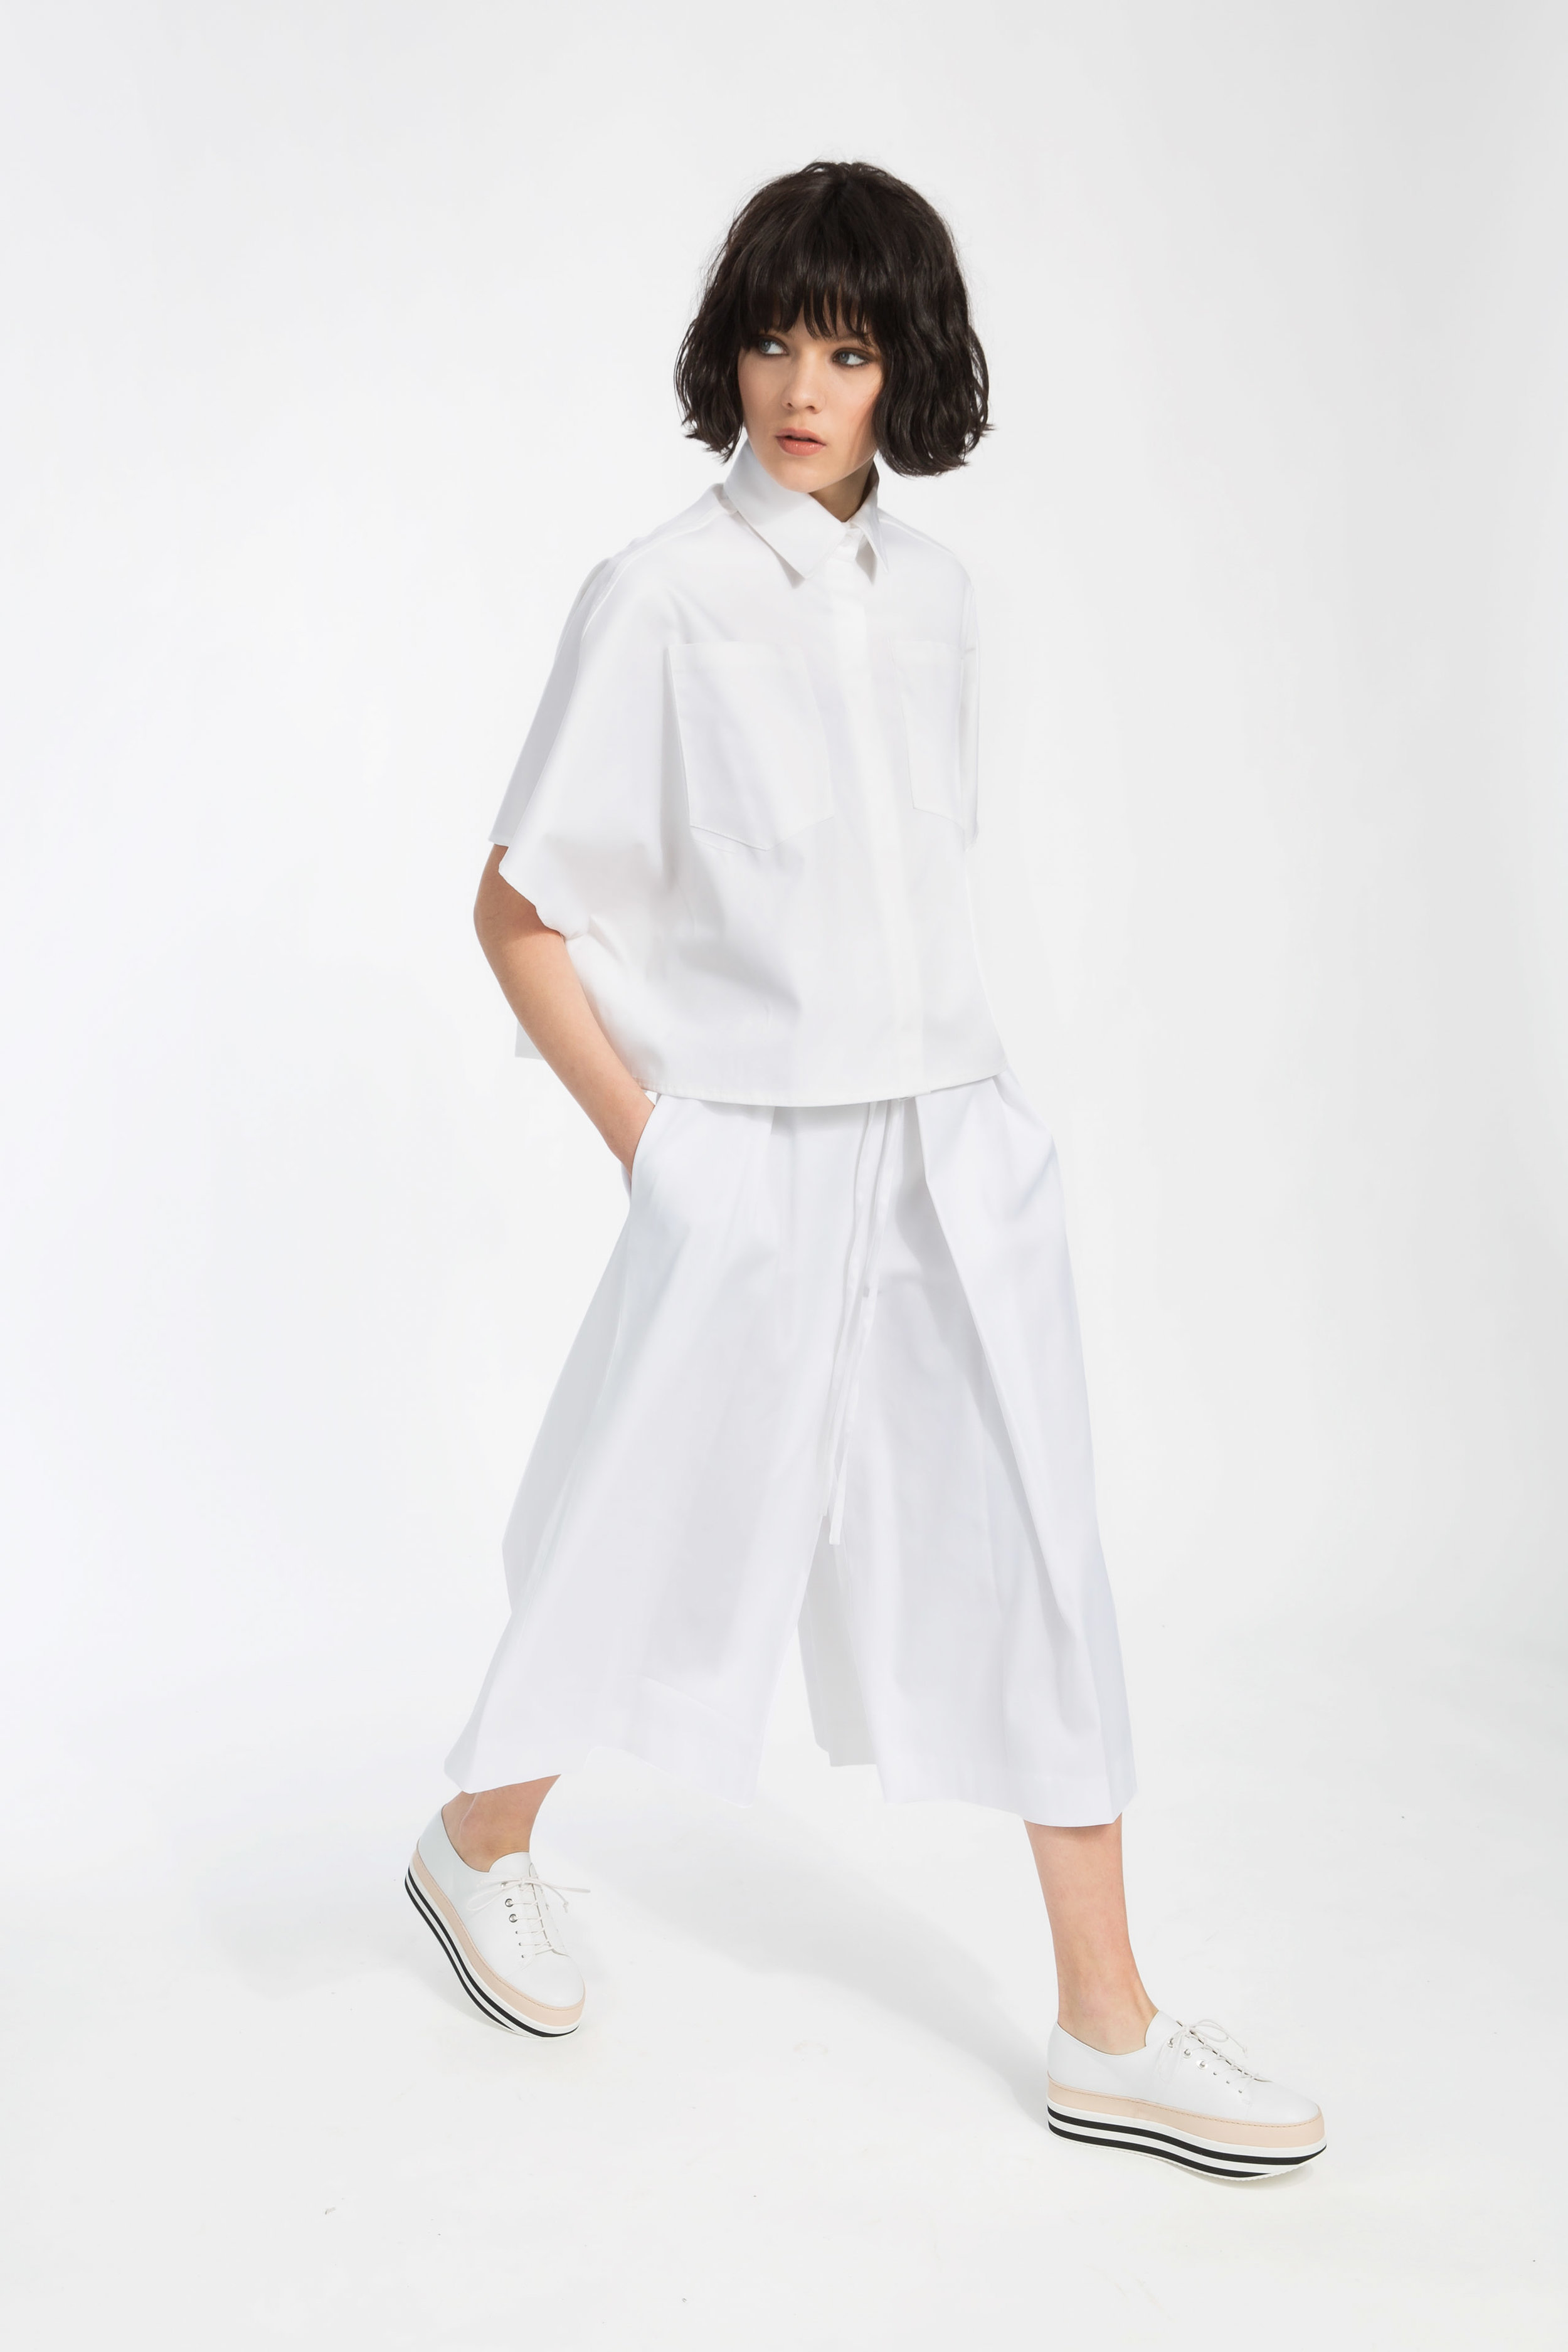 Deena - ....Cropped shirt with shortDolman sleeves..Chemise courte, auxmanches écourtées....